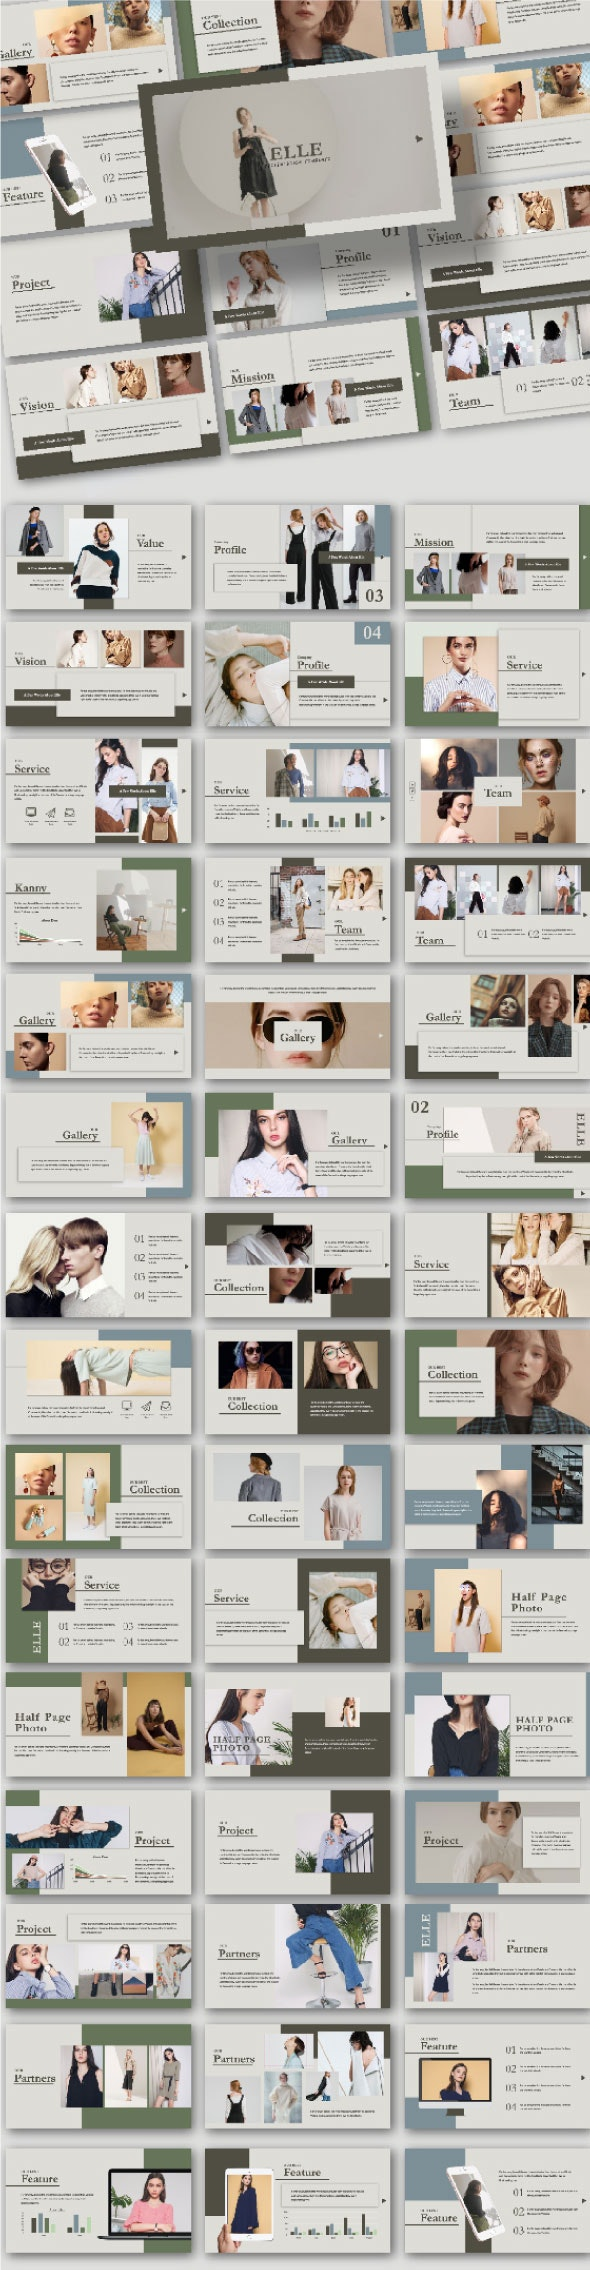 Elle Powerpoint Template - Creative PowerPoint Templates